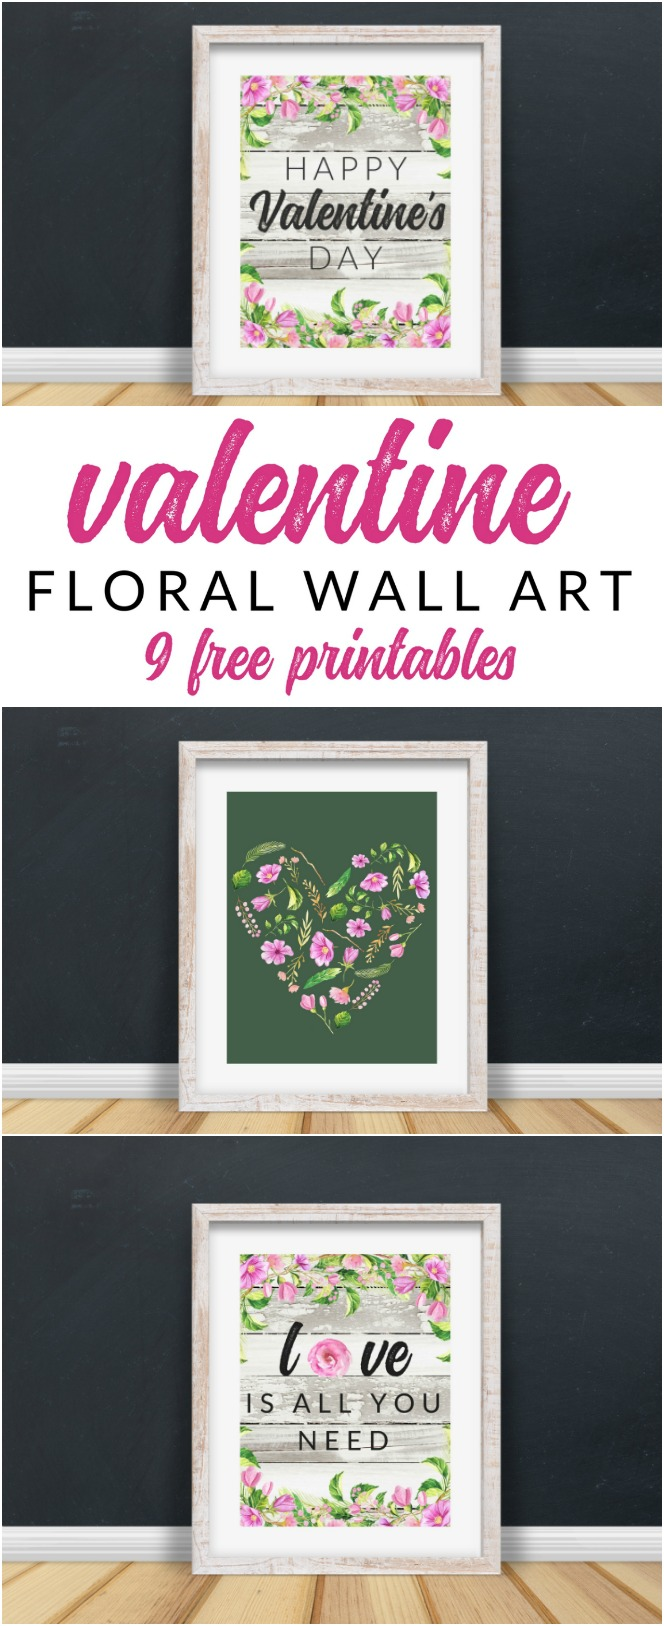 This FREE Floral Valentine Printable Pack is perfect for your holiday decor and gallery walls. 9 free farmhouse style Valentine printables.